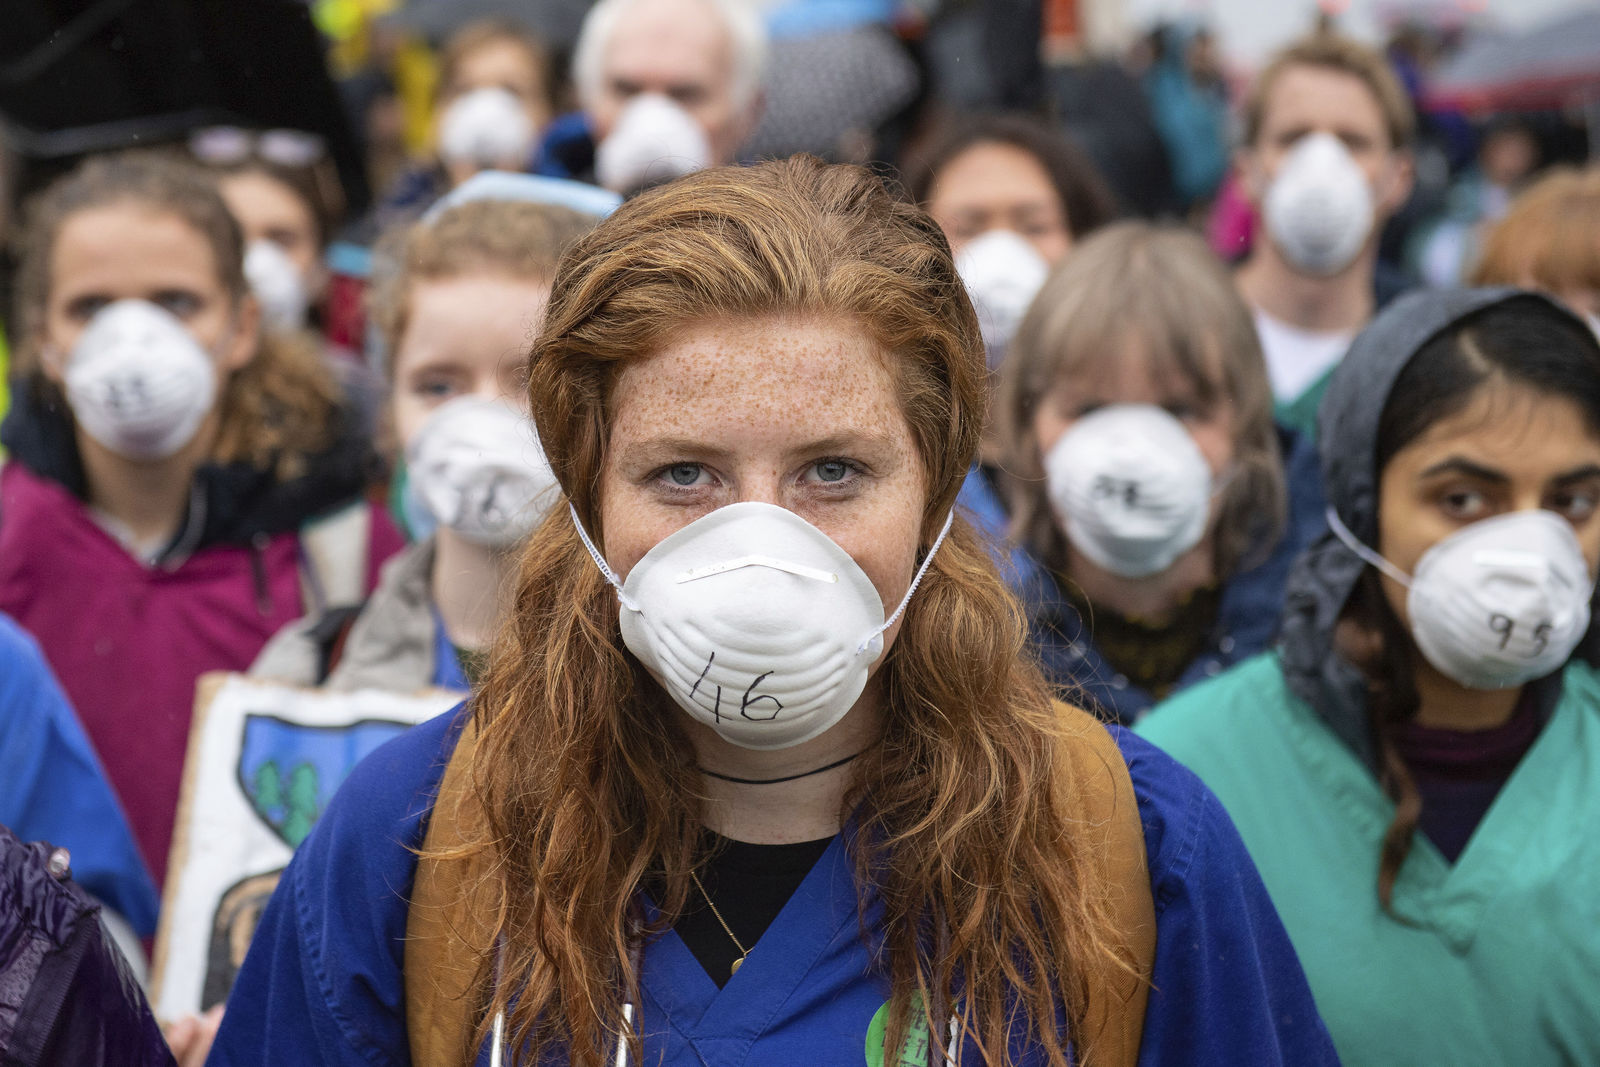 Doctors gather to protest in support of Extinction Rebellion (XR) at Jubilee Gardens, London, Saturday Oct. 12, 2019, to highlight deaths caused by air pollution. (Dominic Lipinski/PA via AP)